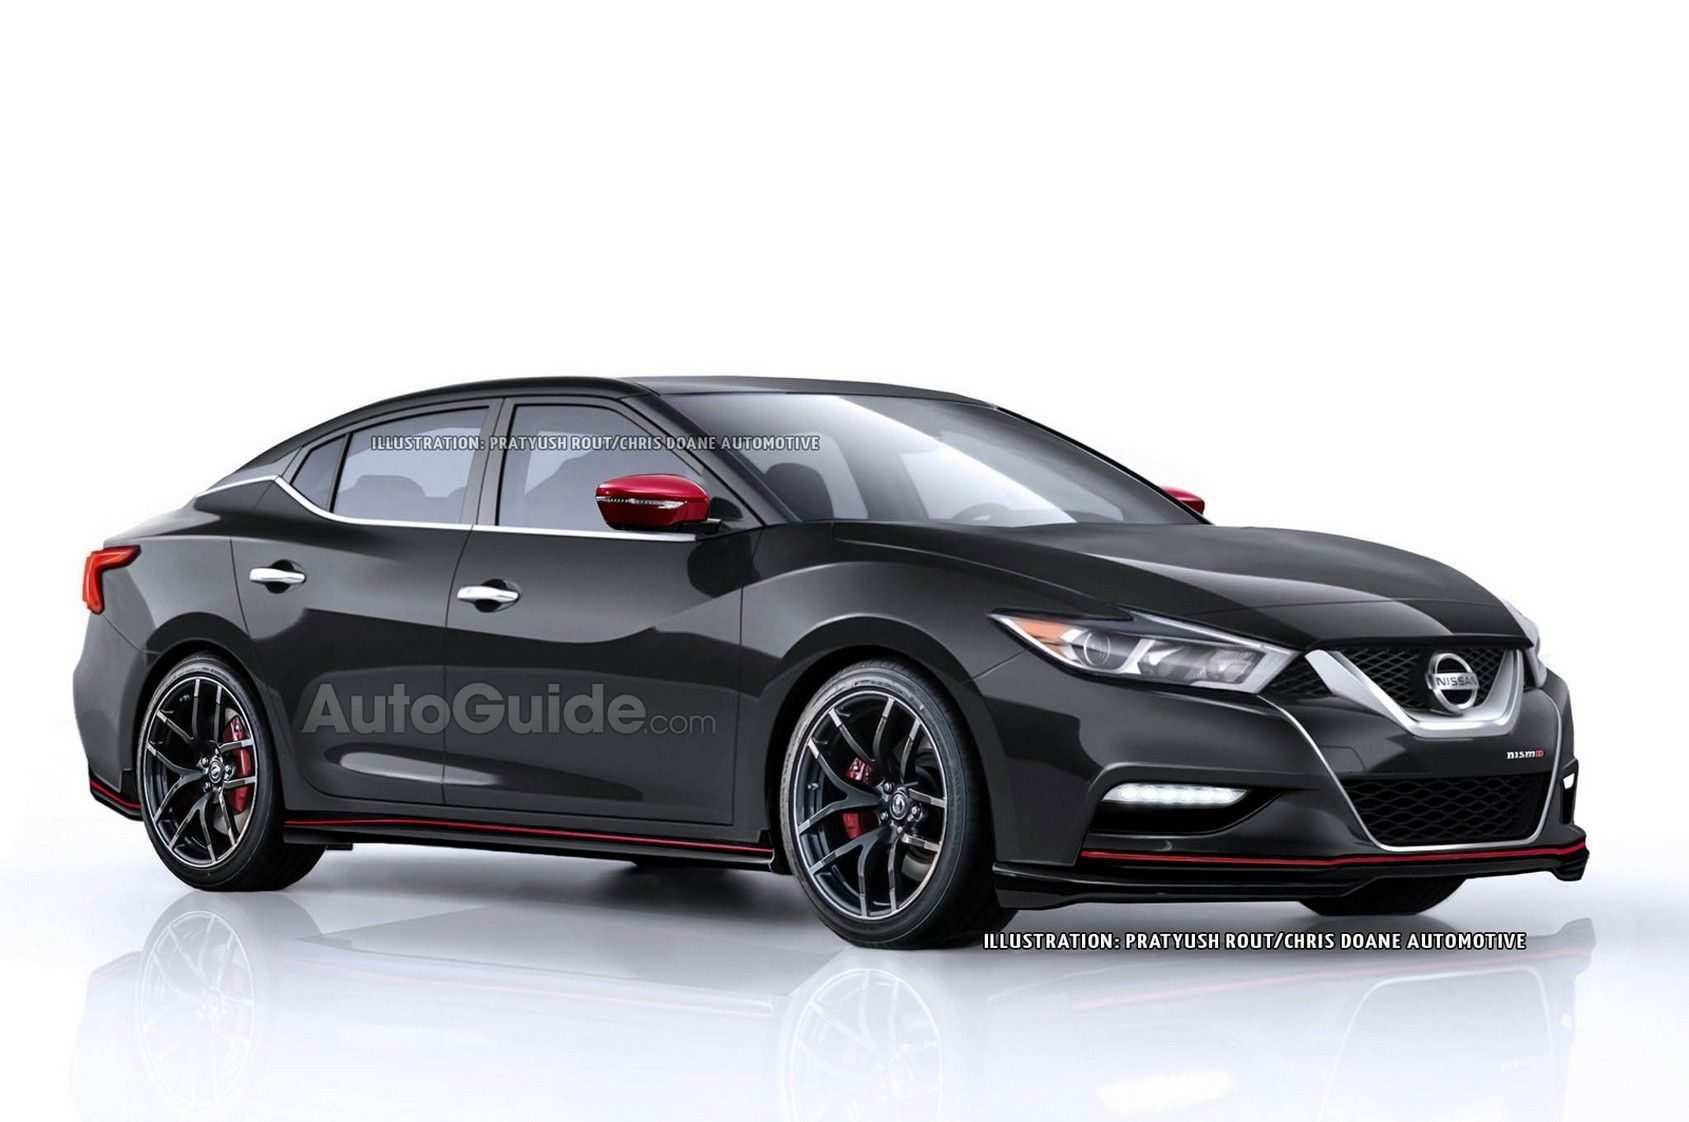 86 New Nissan Maxima 2020 Price Speed Test with Nissan Maxima 2020 Price